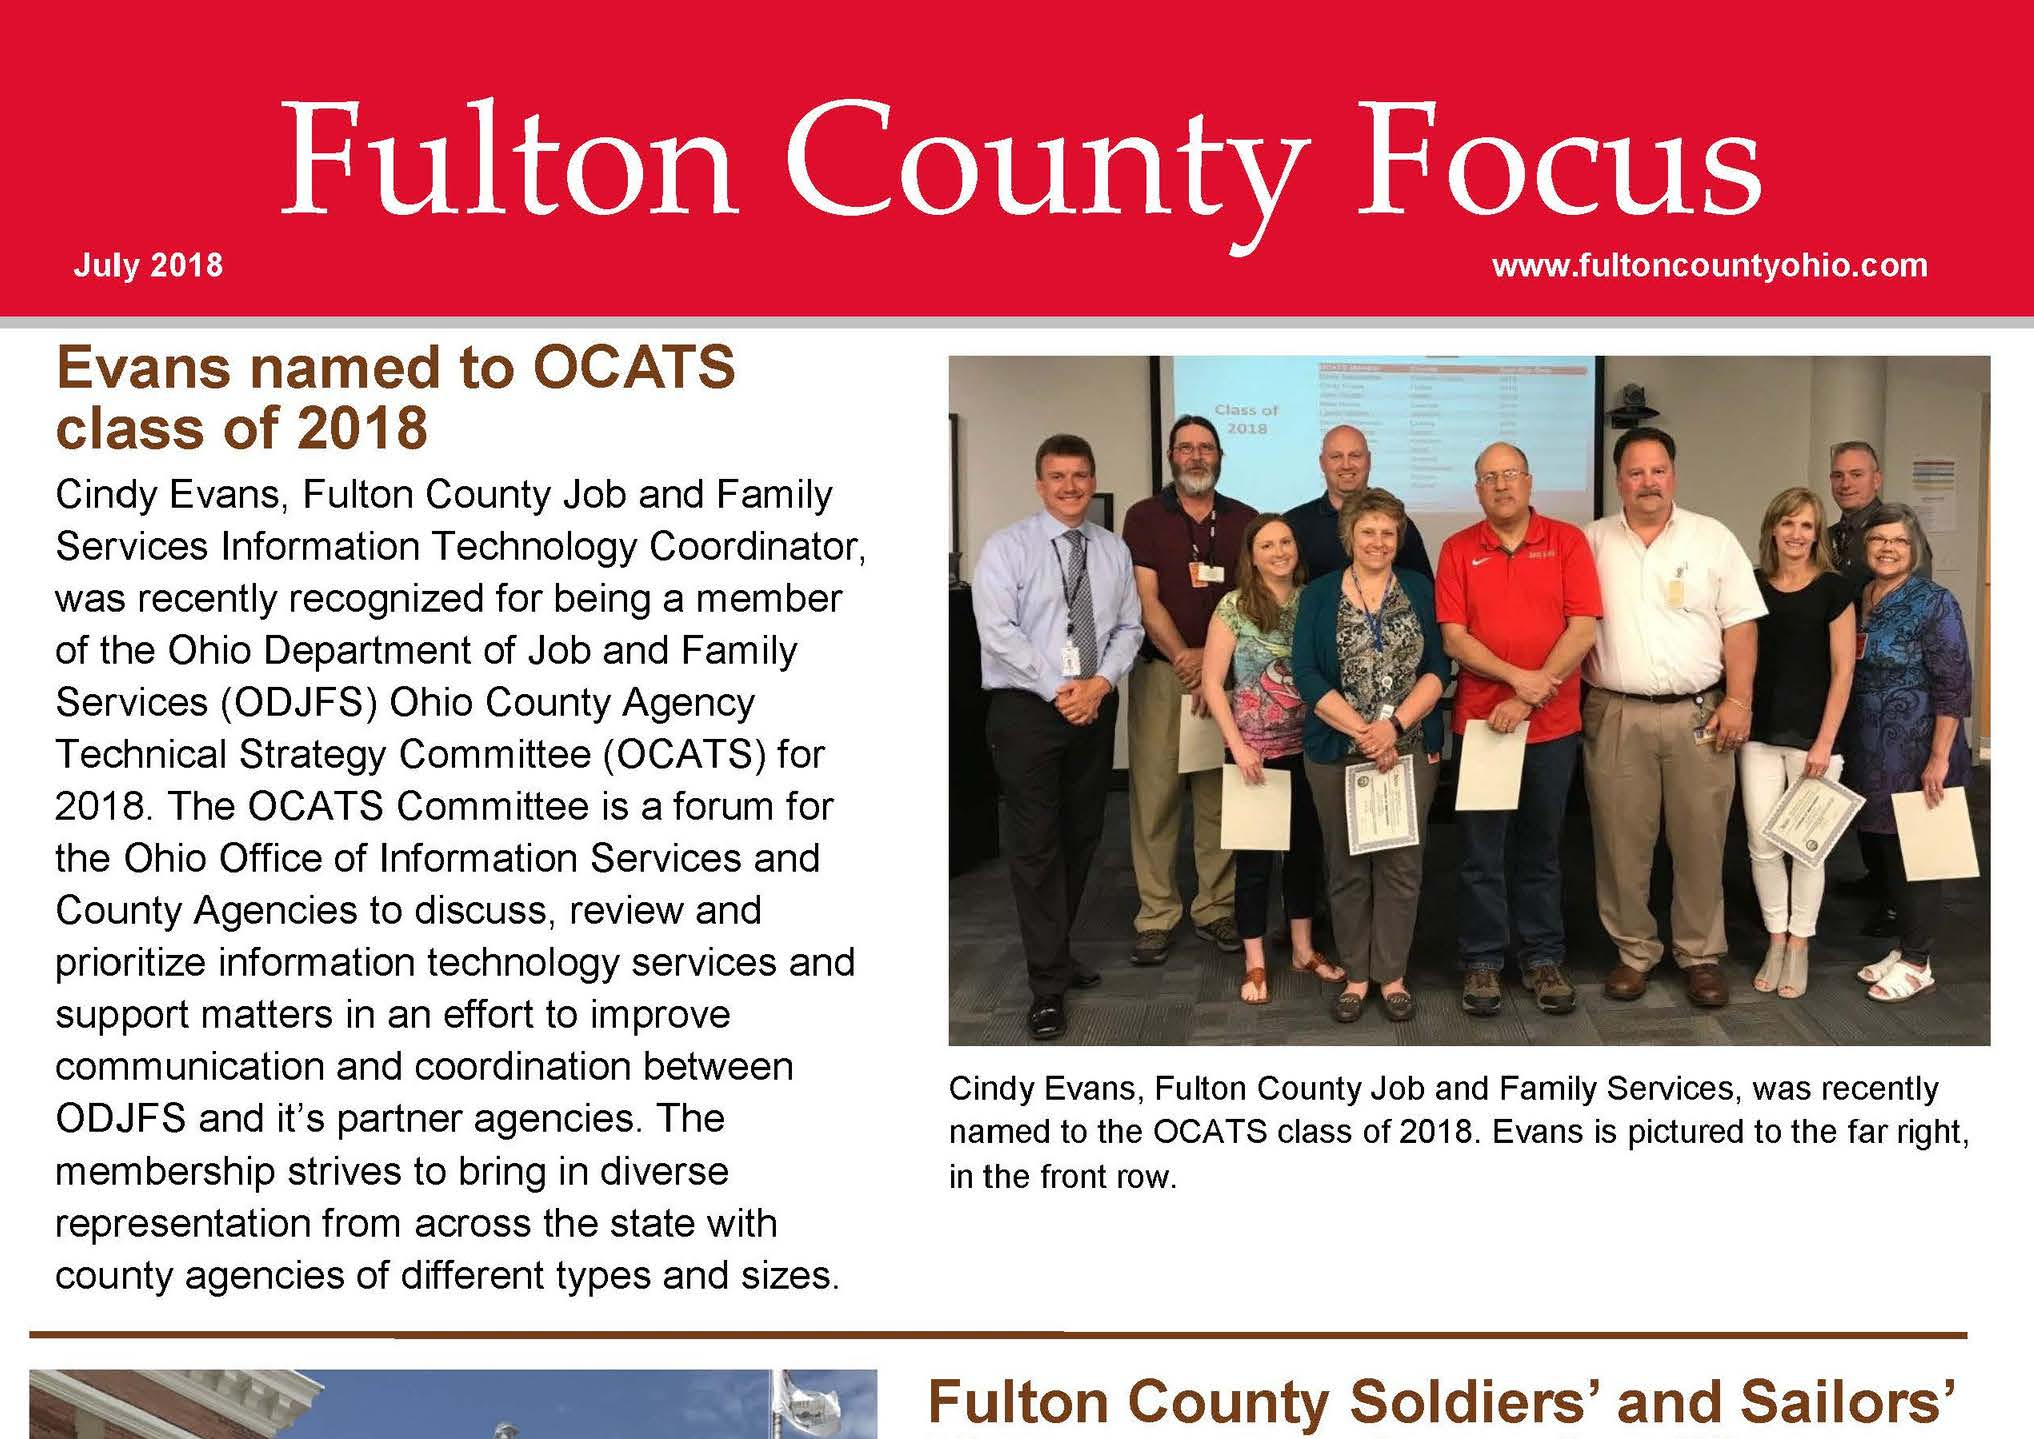 Fulton County Focus Crop July 2018 Edition